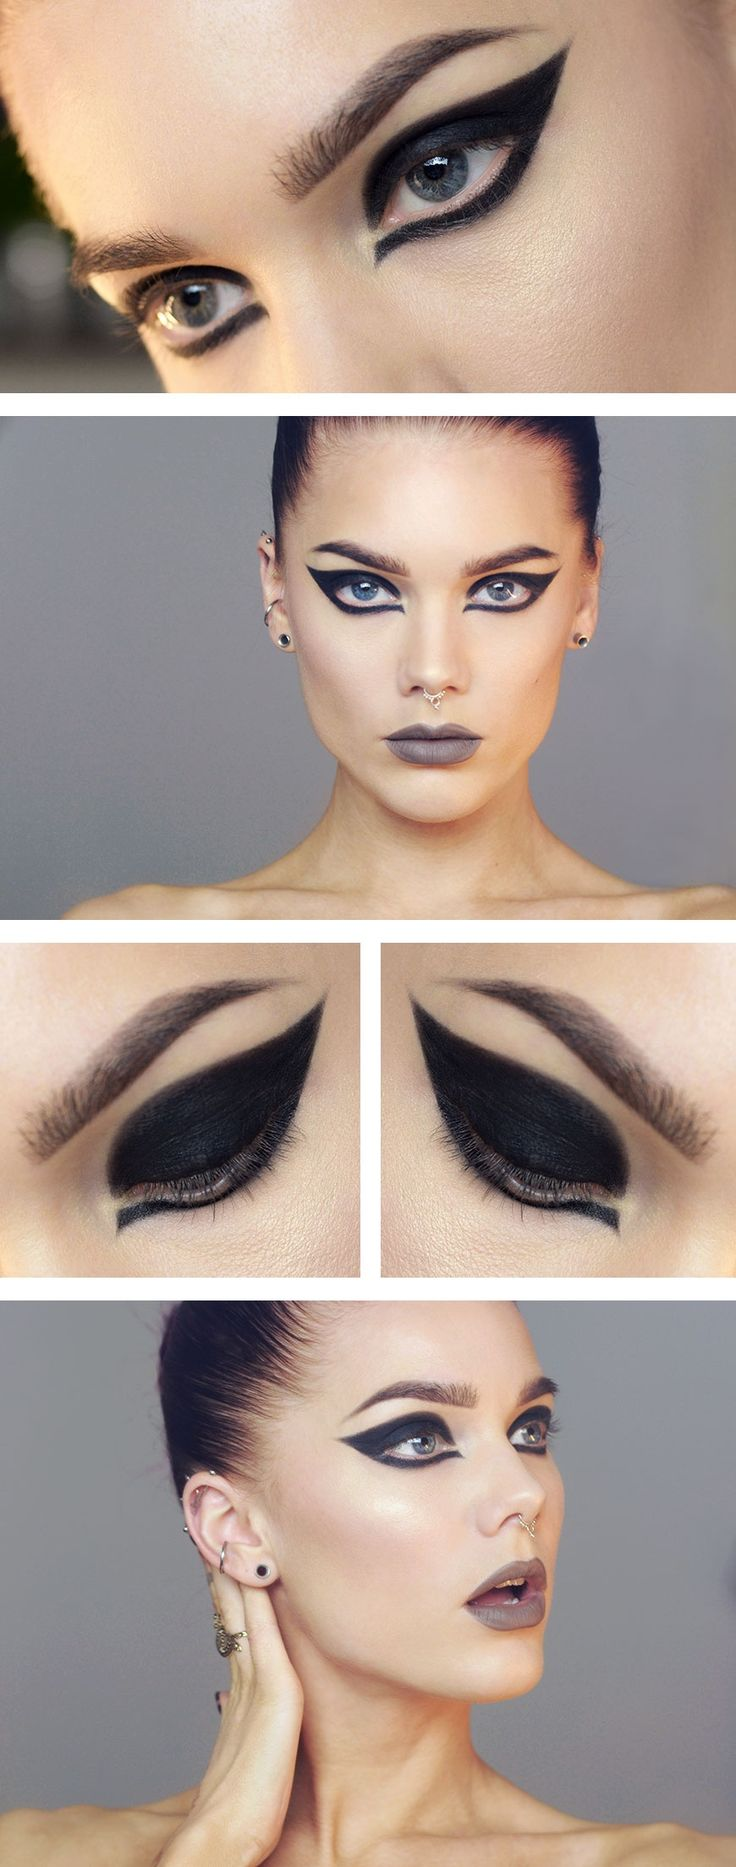 NOTES: I think the strong winged eyeliner would be really effective if adapted to suit my designs.